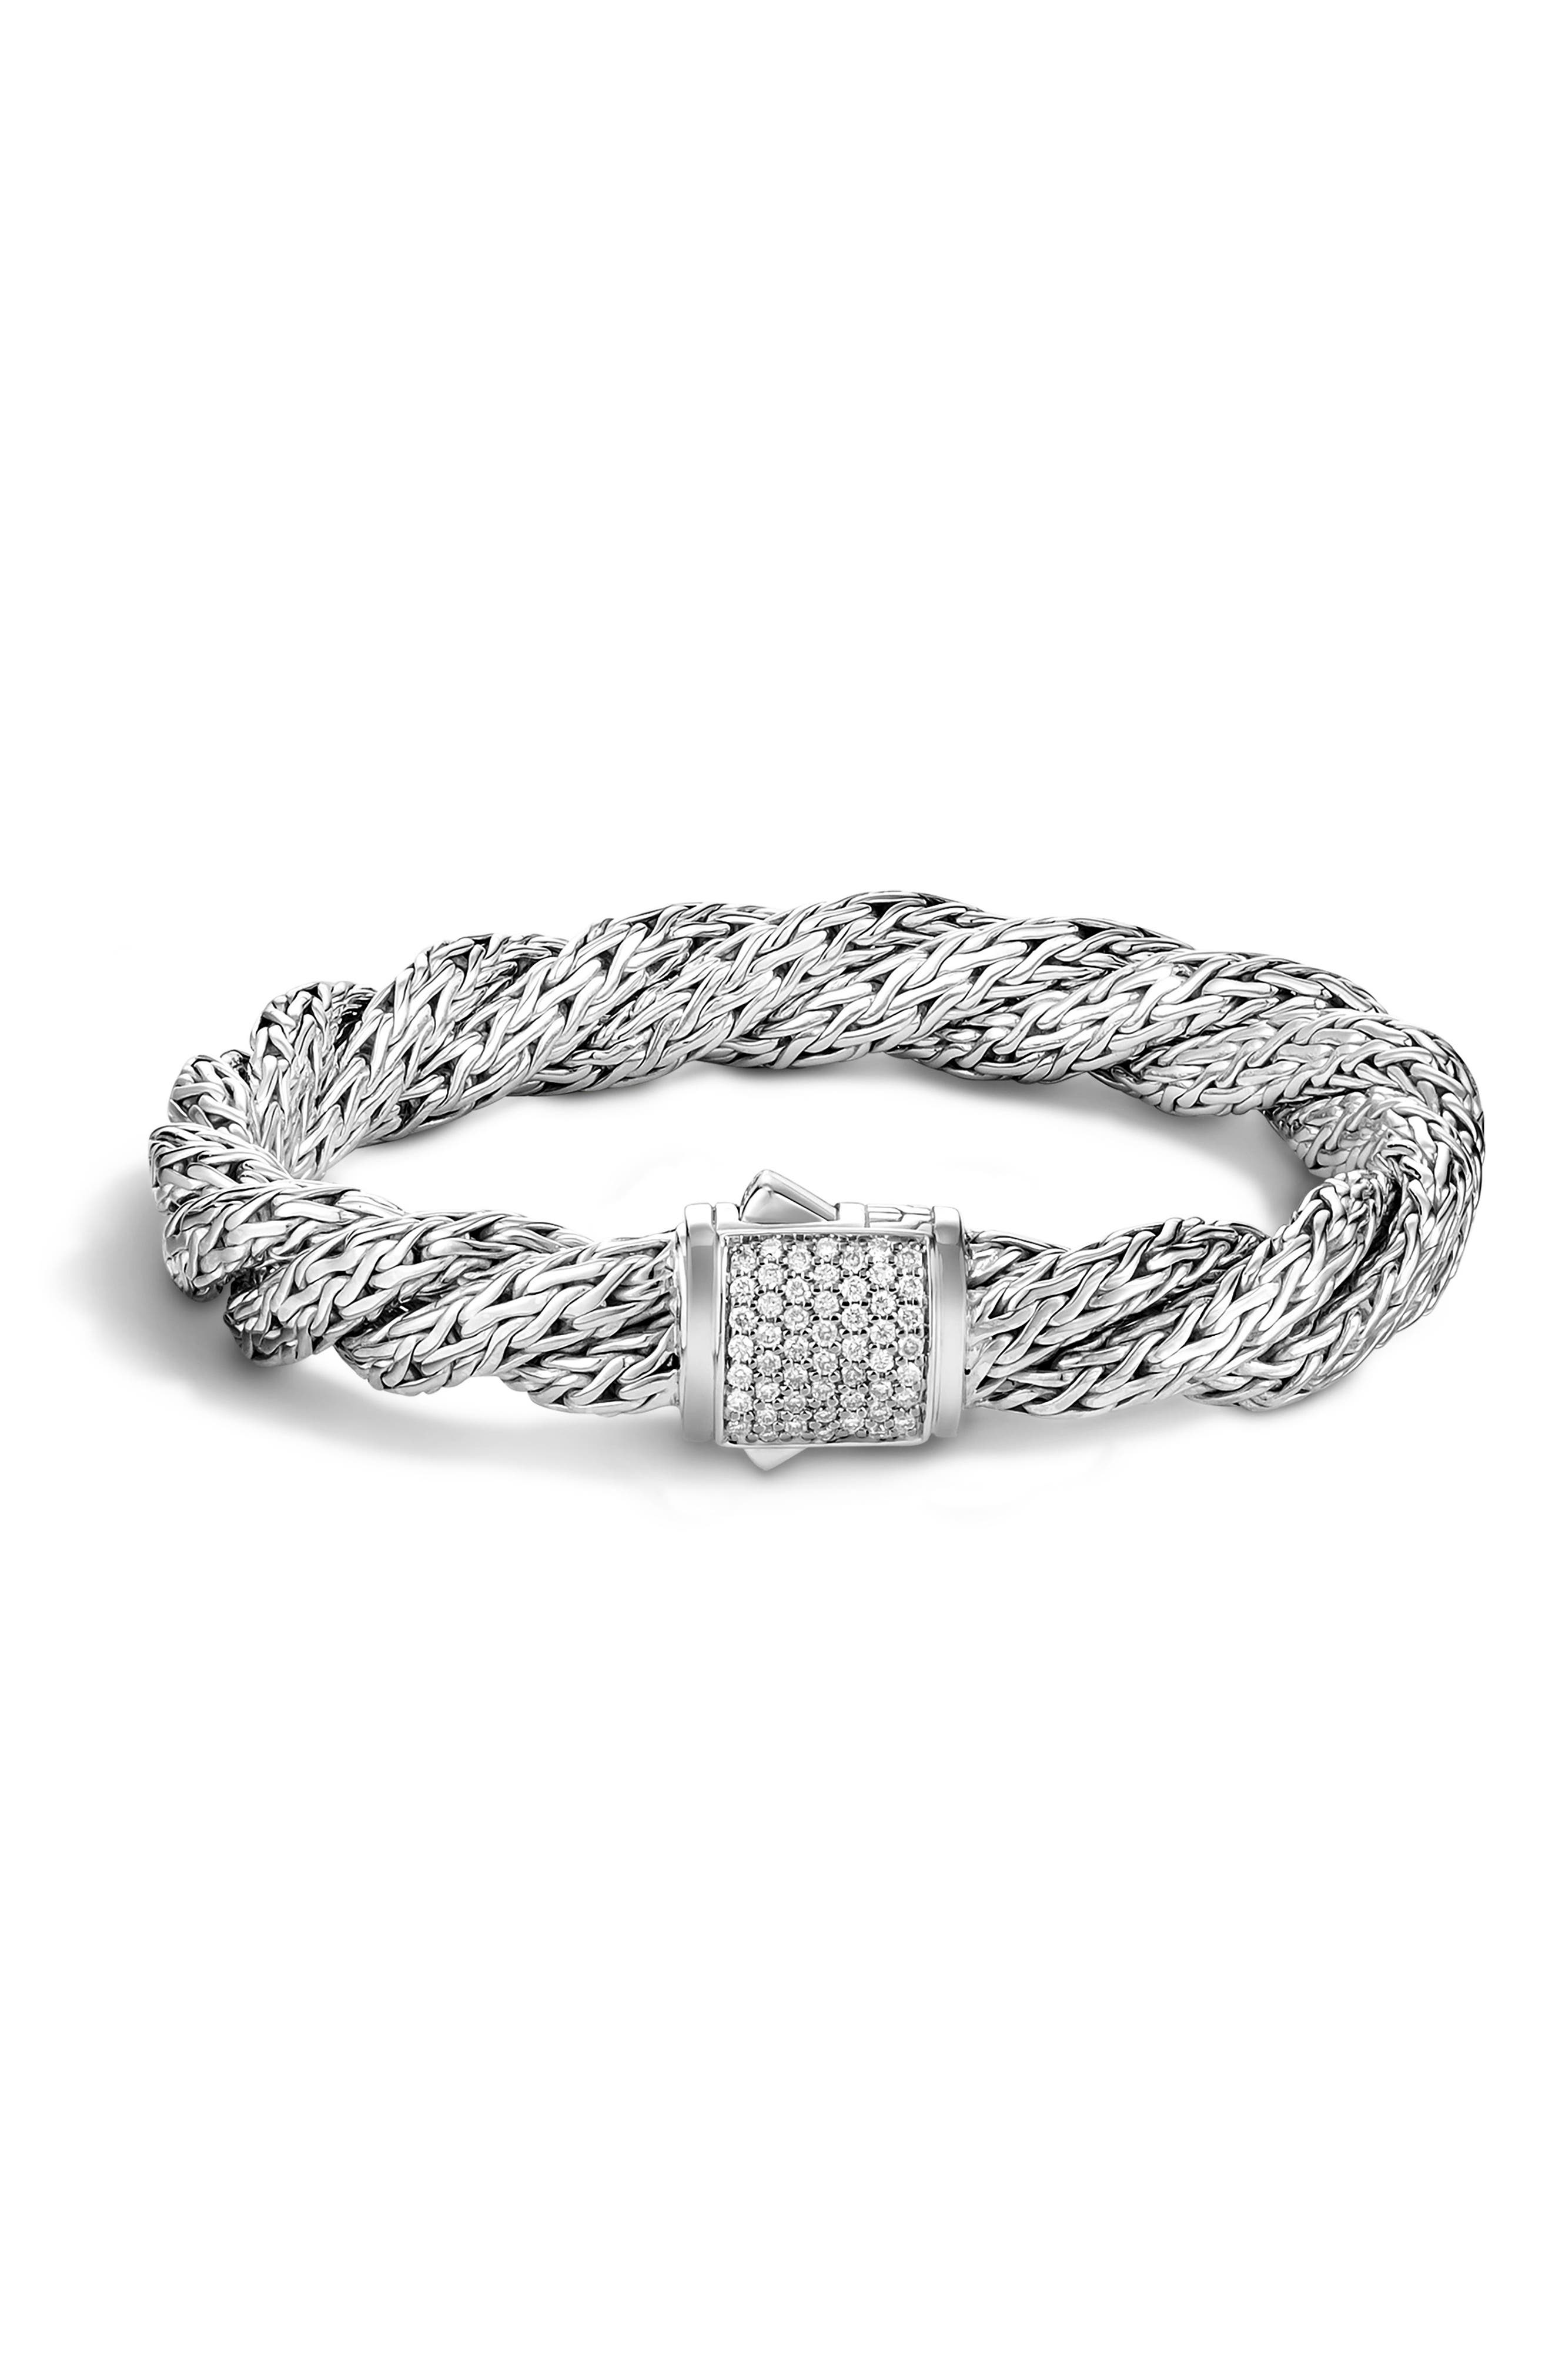 JOHN HARDY Twist Chain Pavé Diamond Bracelet, Main, color, SILVER/ DIAMOND